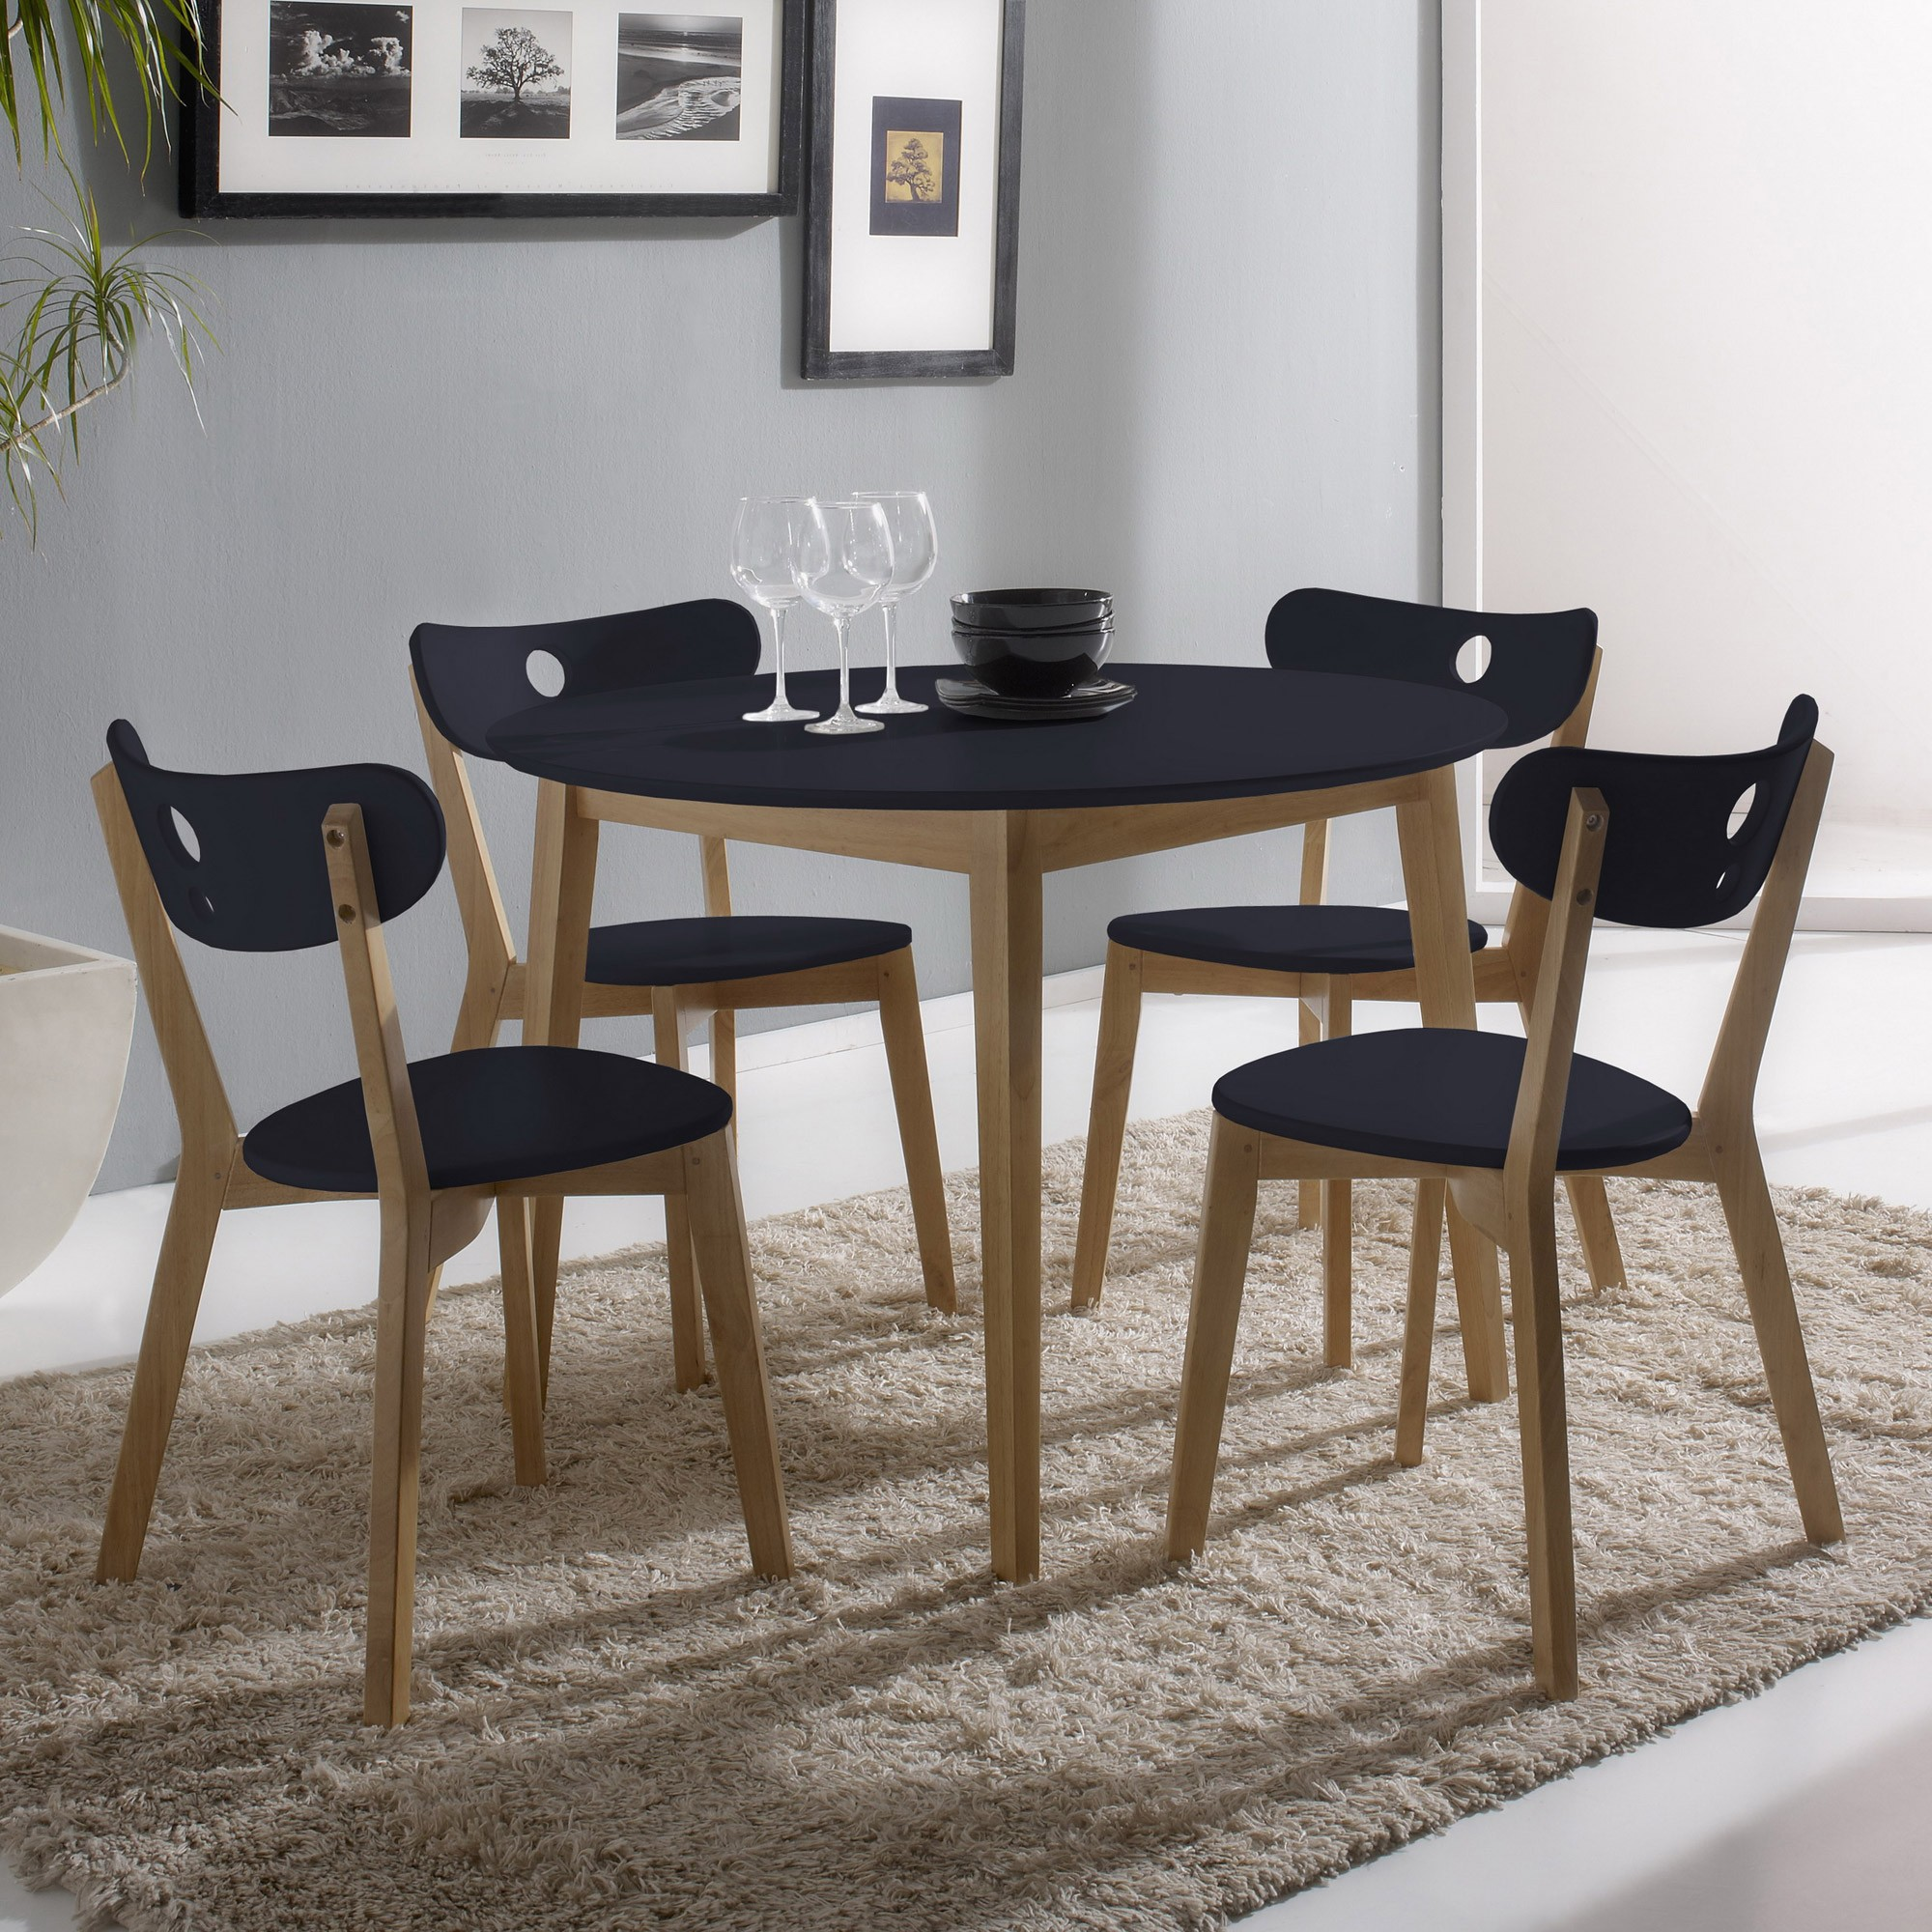 tables de cuisine ronde en bois cuisine id es de. Black Bedroom Furniture Sets. Home Design Ideas